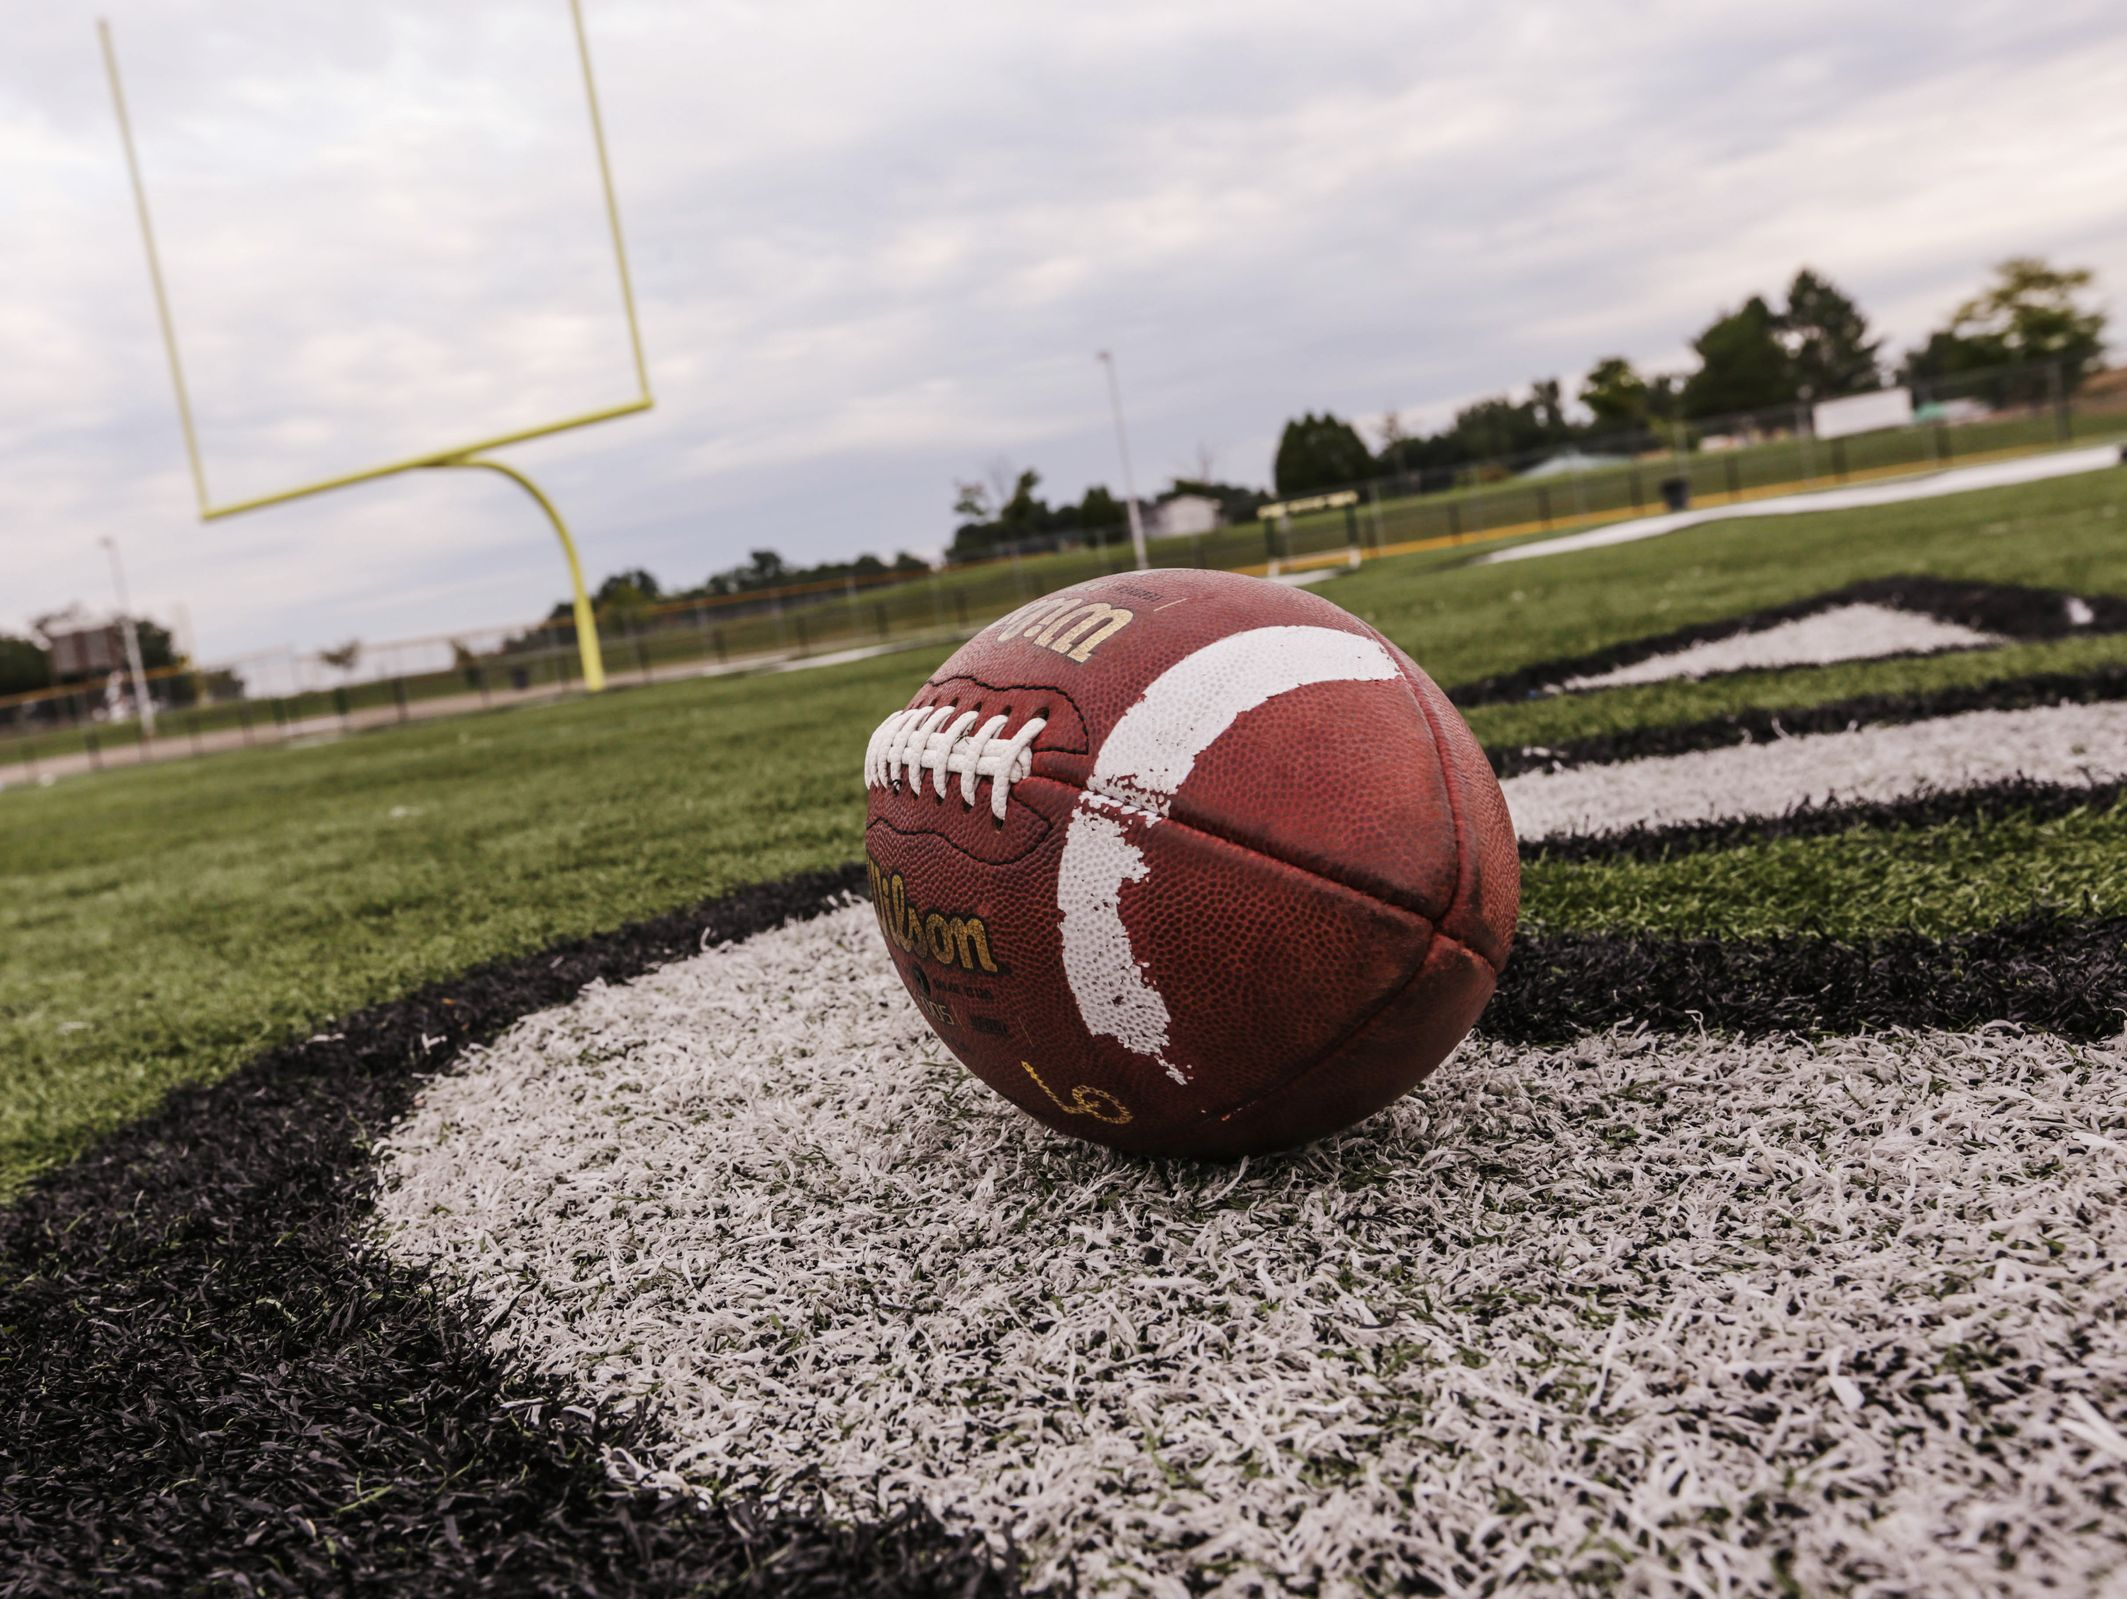 A football lays on the field in view of the end zone at a high school.